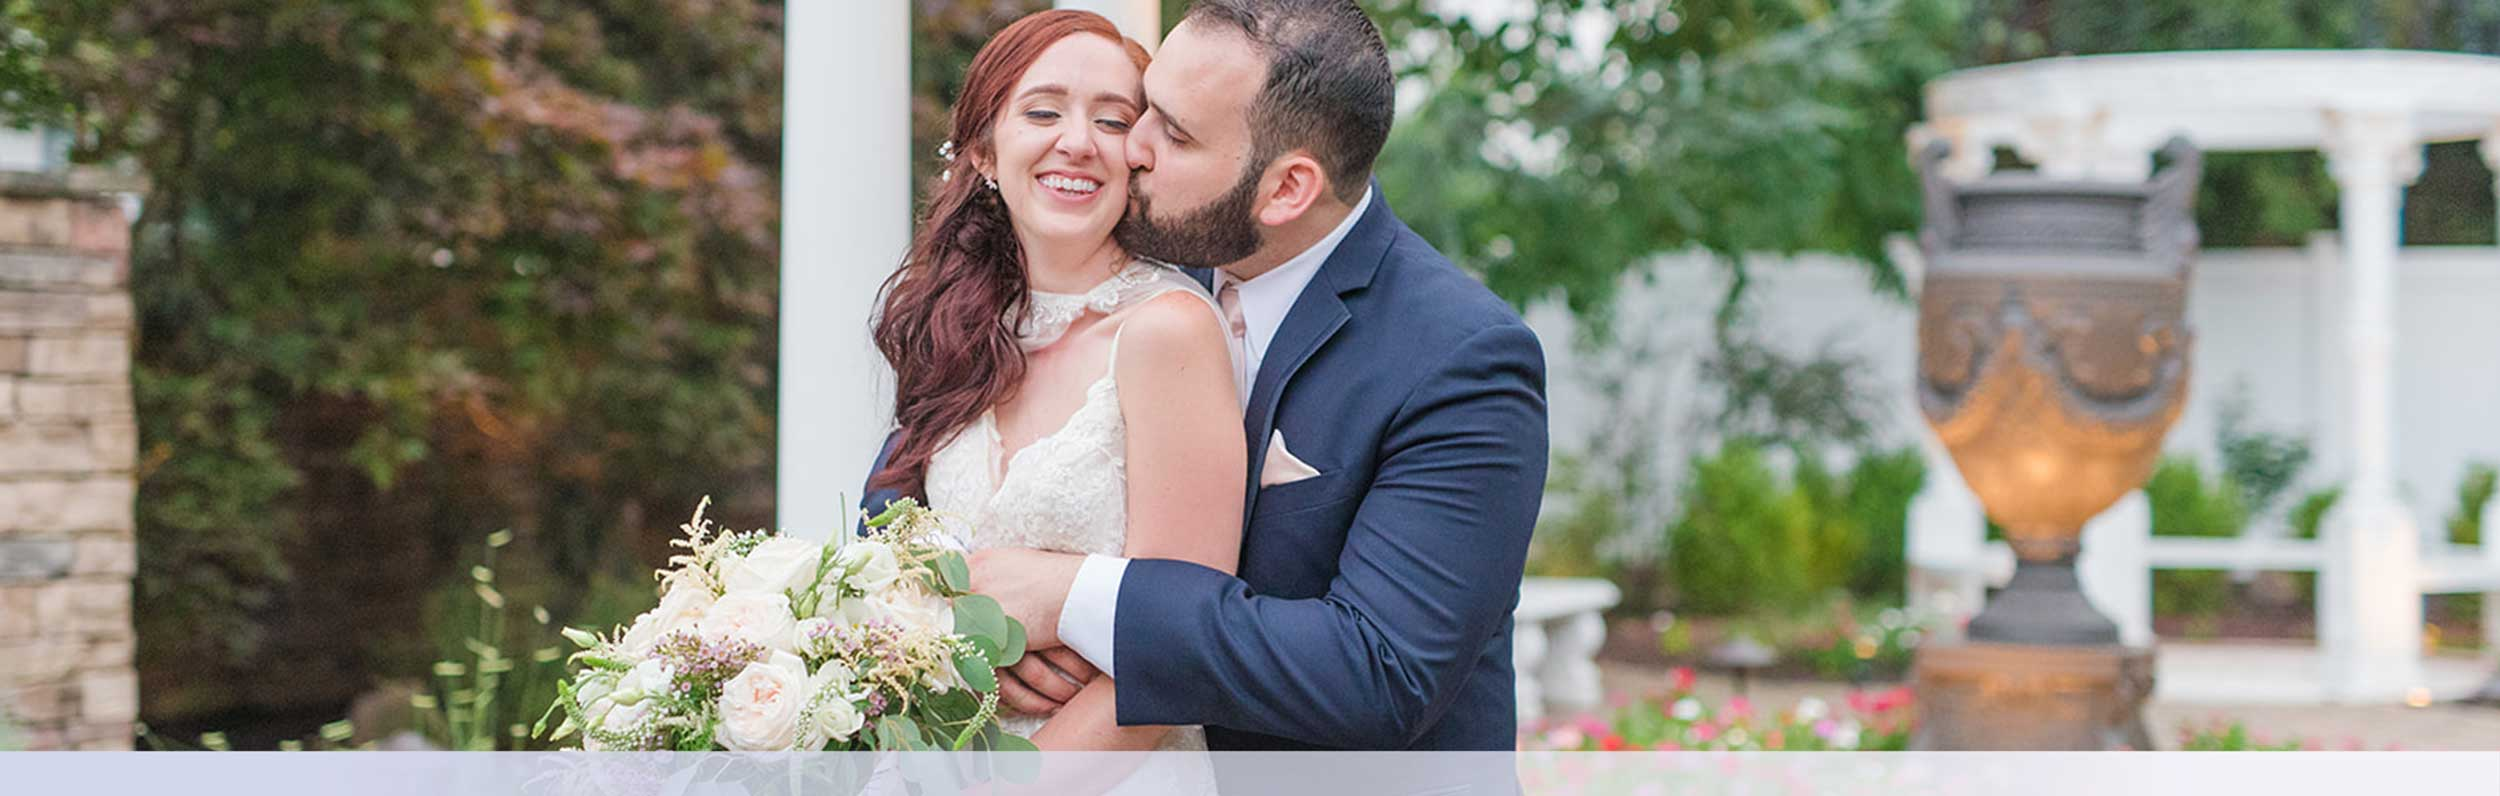 Romantic Outdoor Stirling Nj Wedding Ceremony Garden